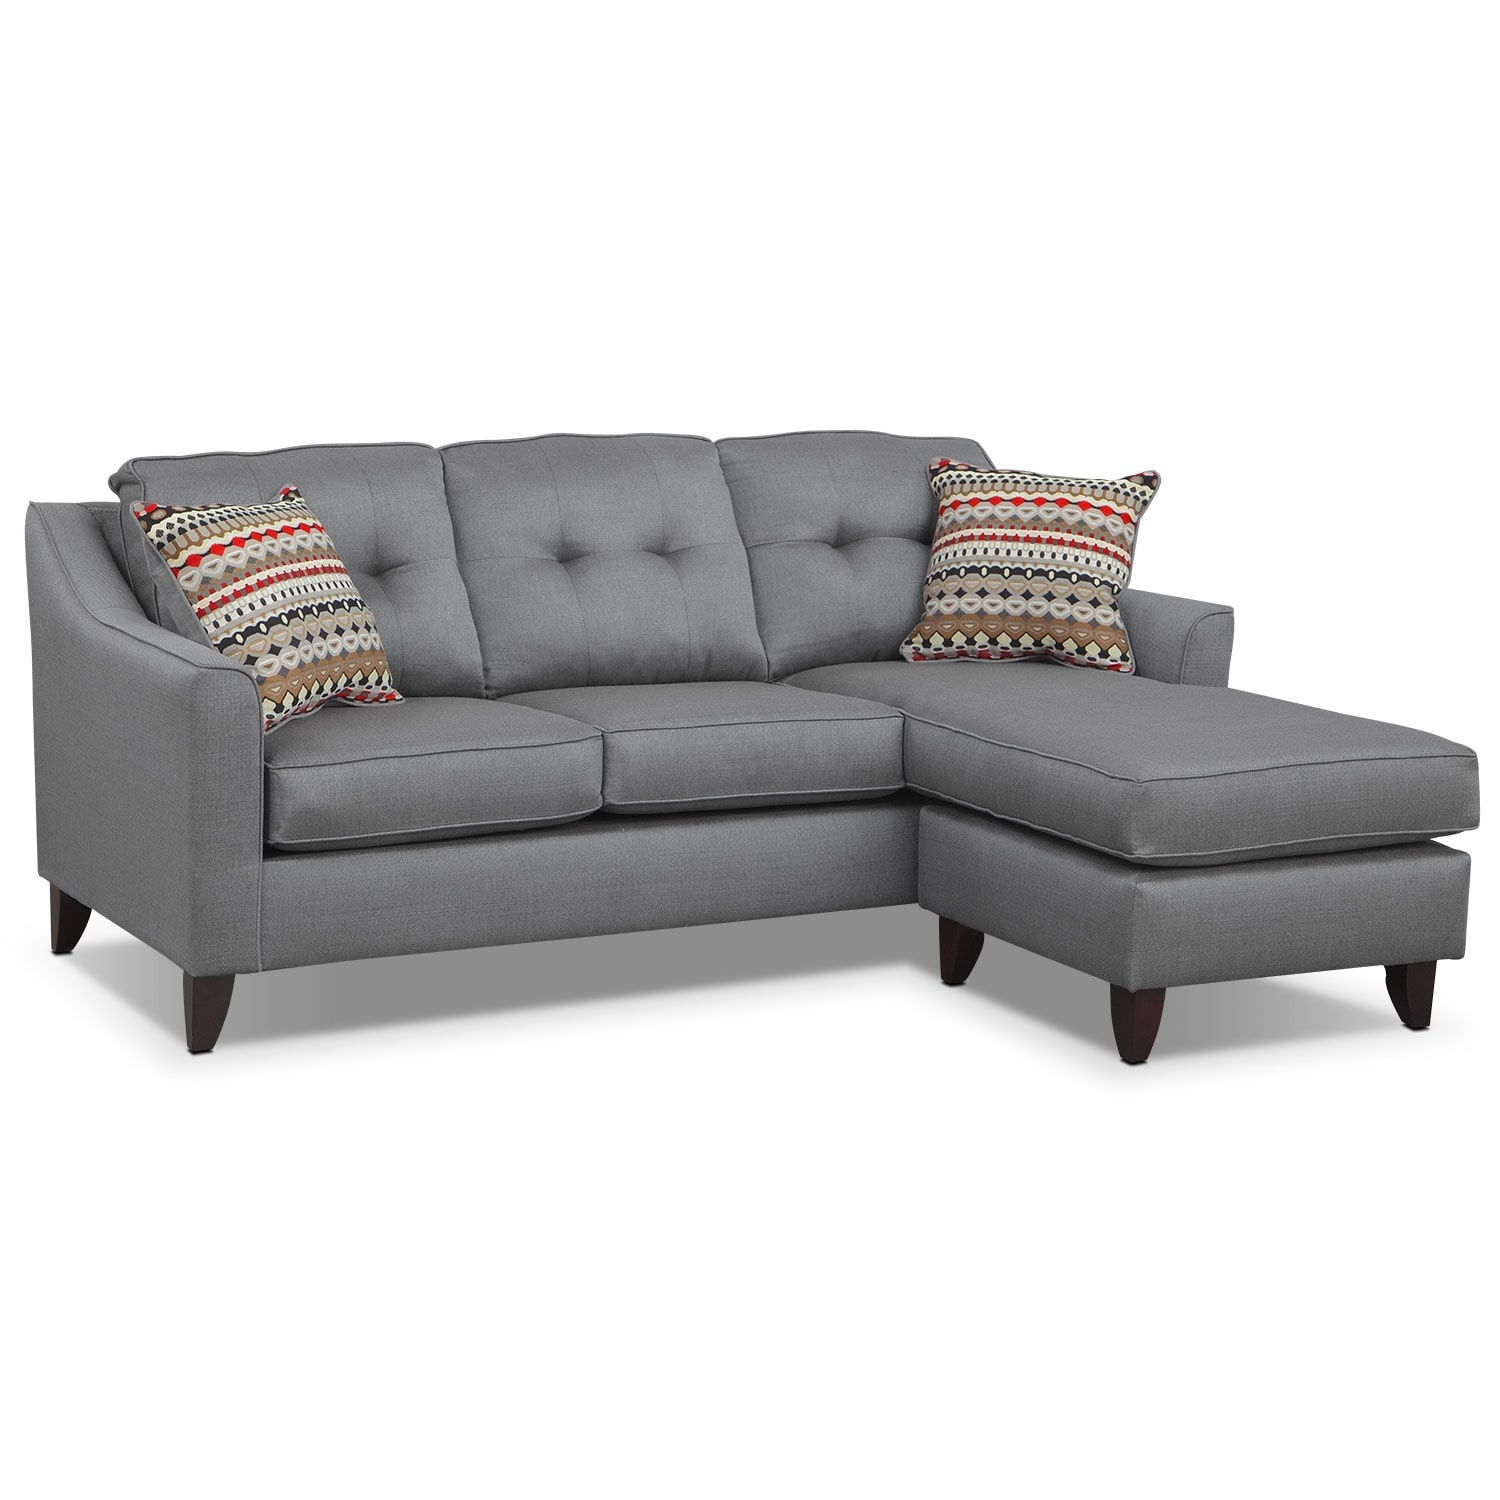 marco gray chaise sofa silver table on sale furniture | american signature